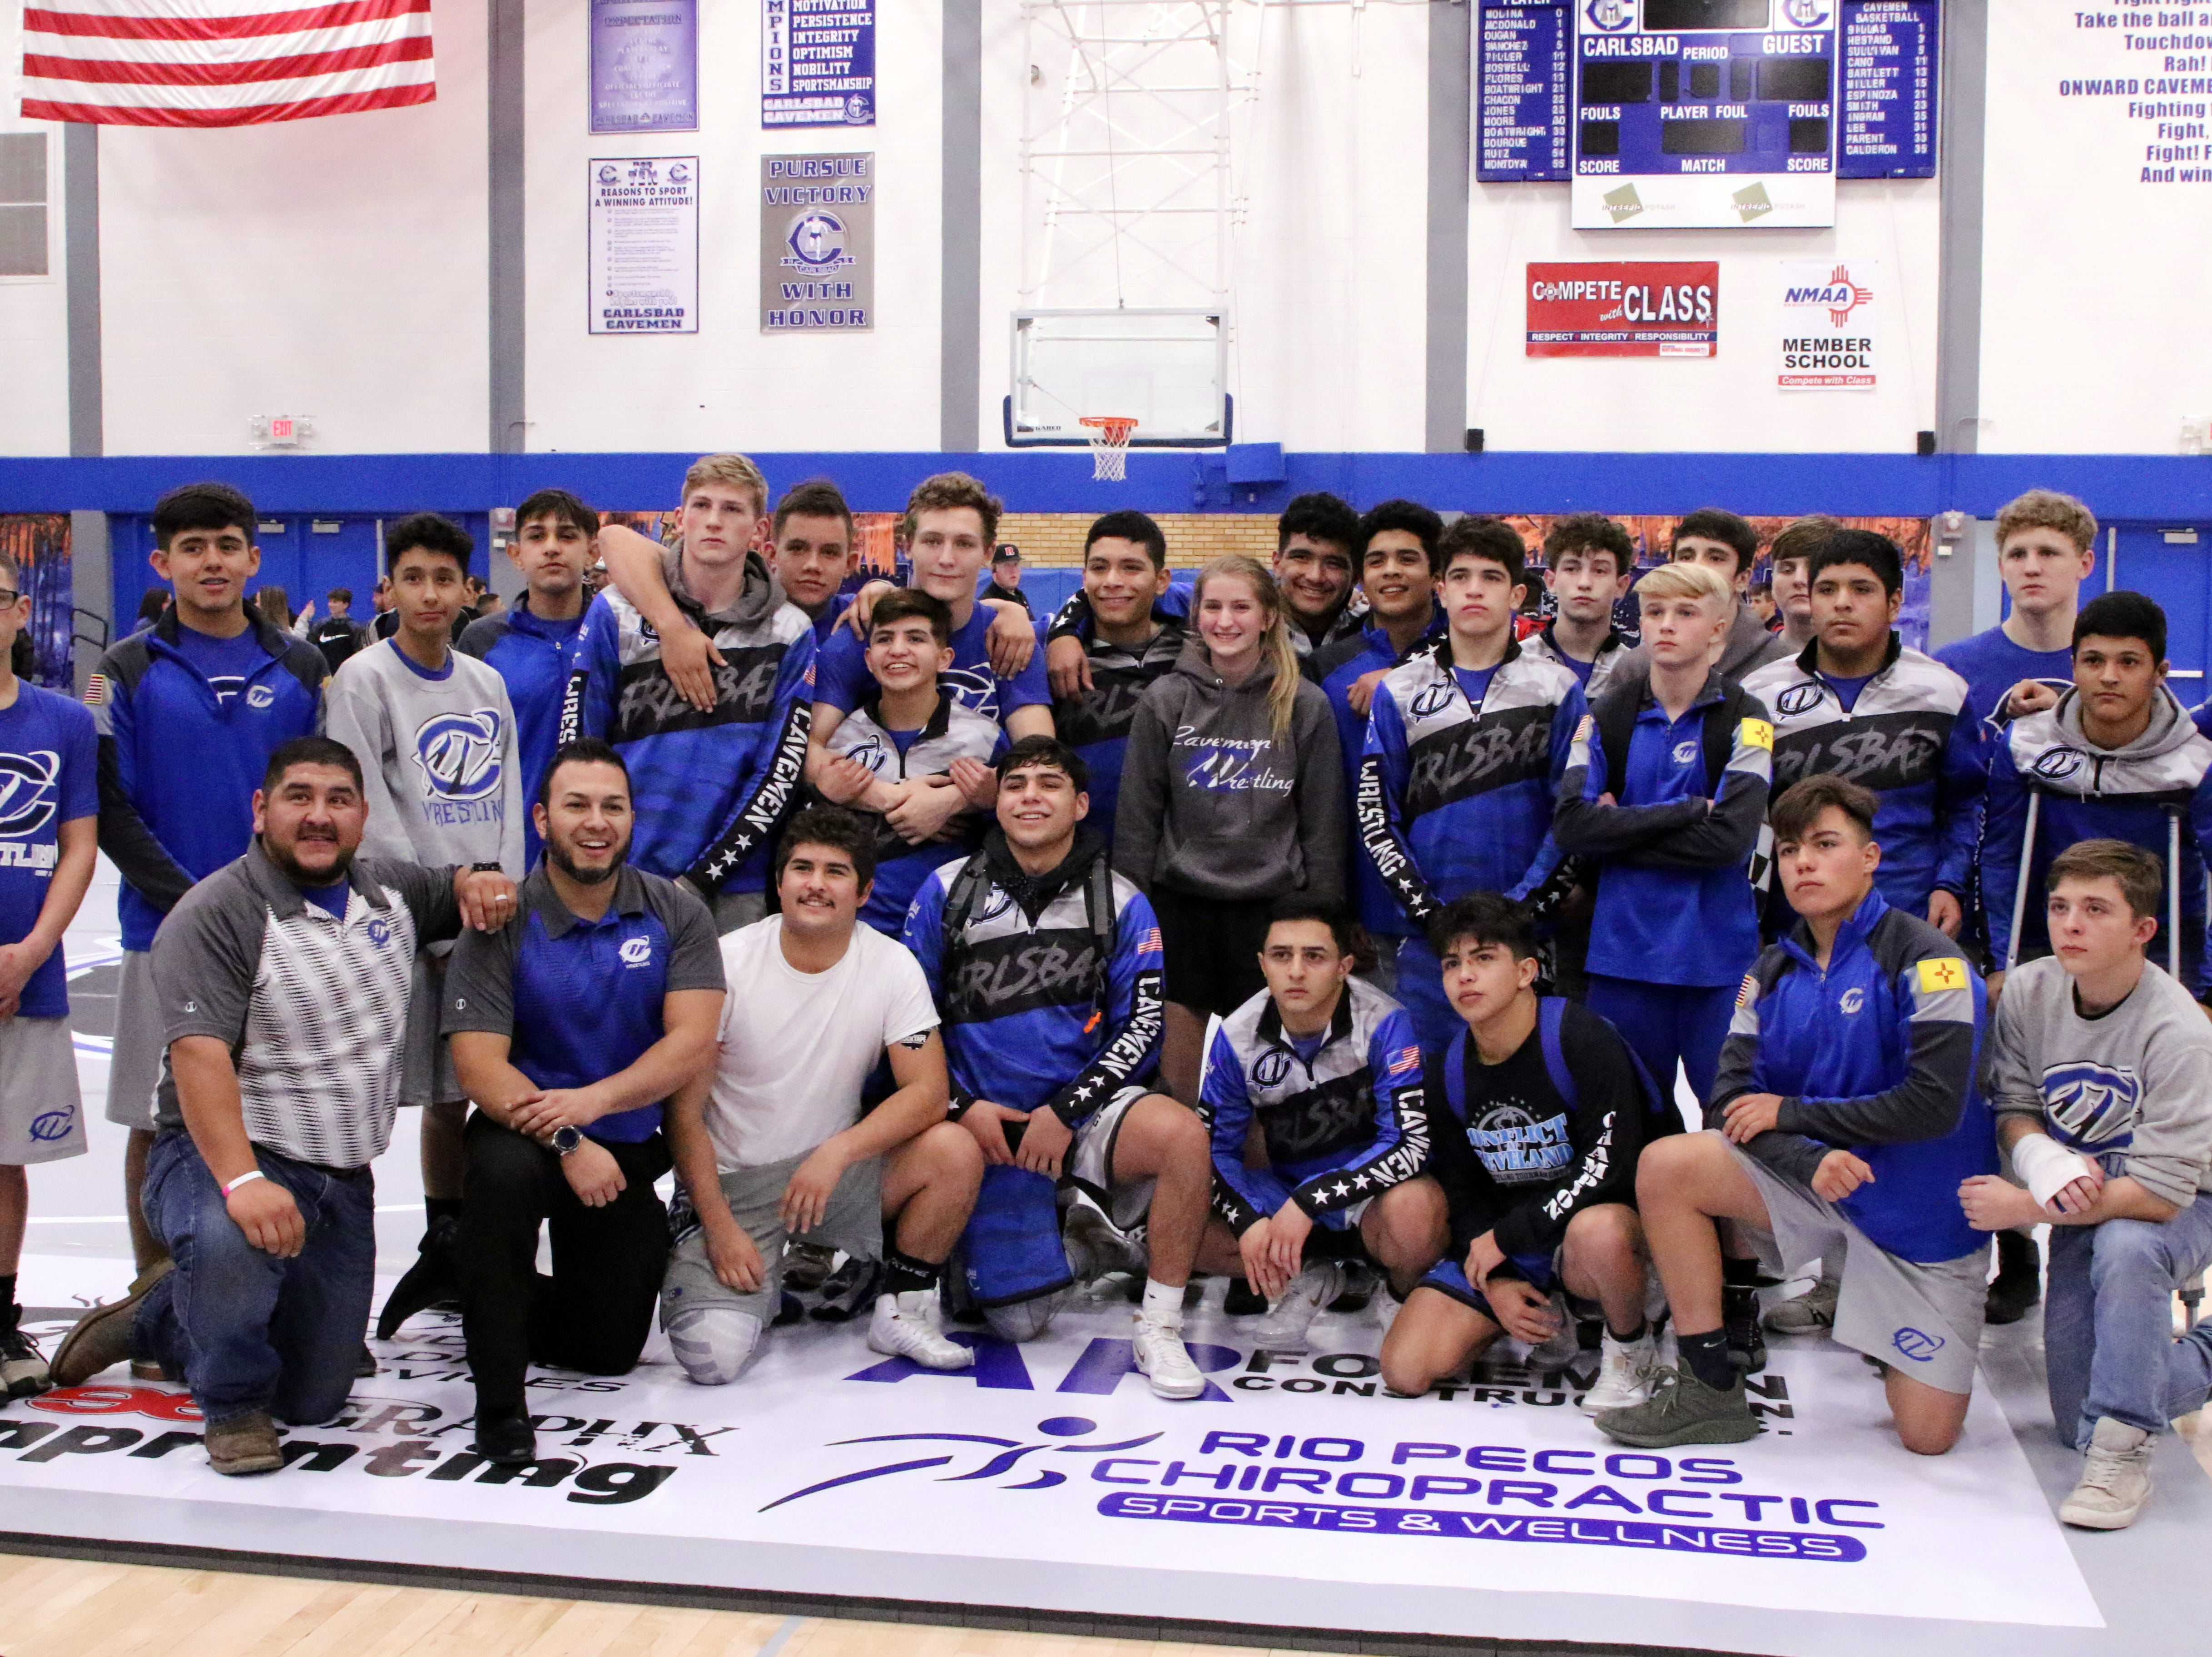 The Carlsbad wrestling team poses after Monday's District Dual against Roswell.